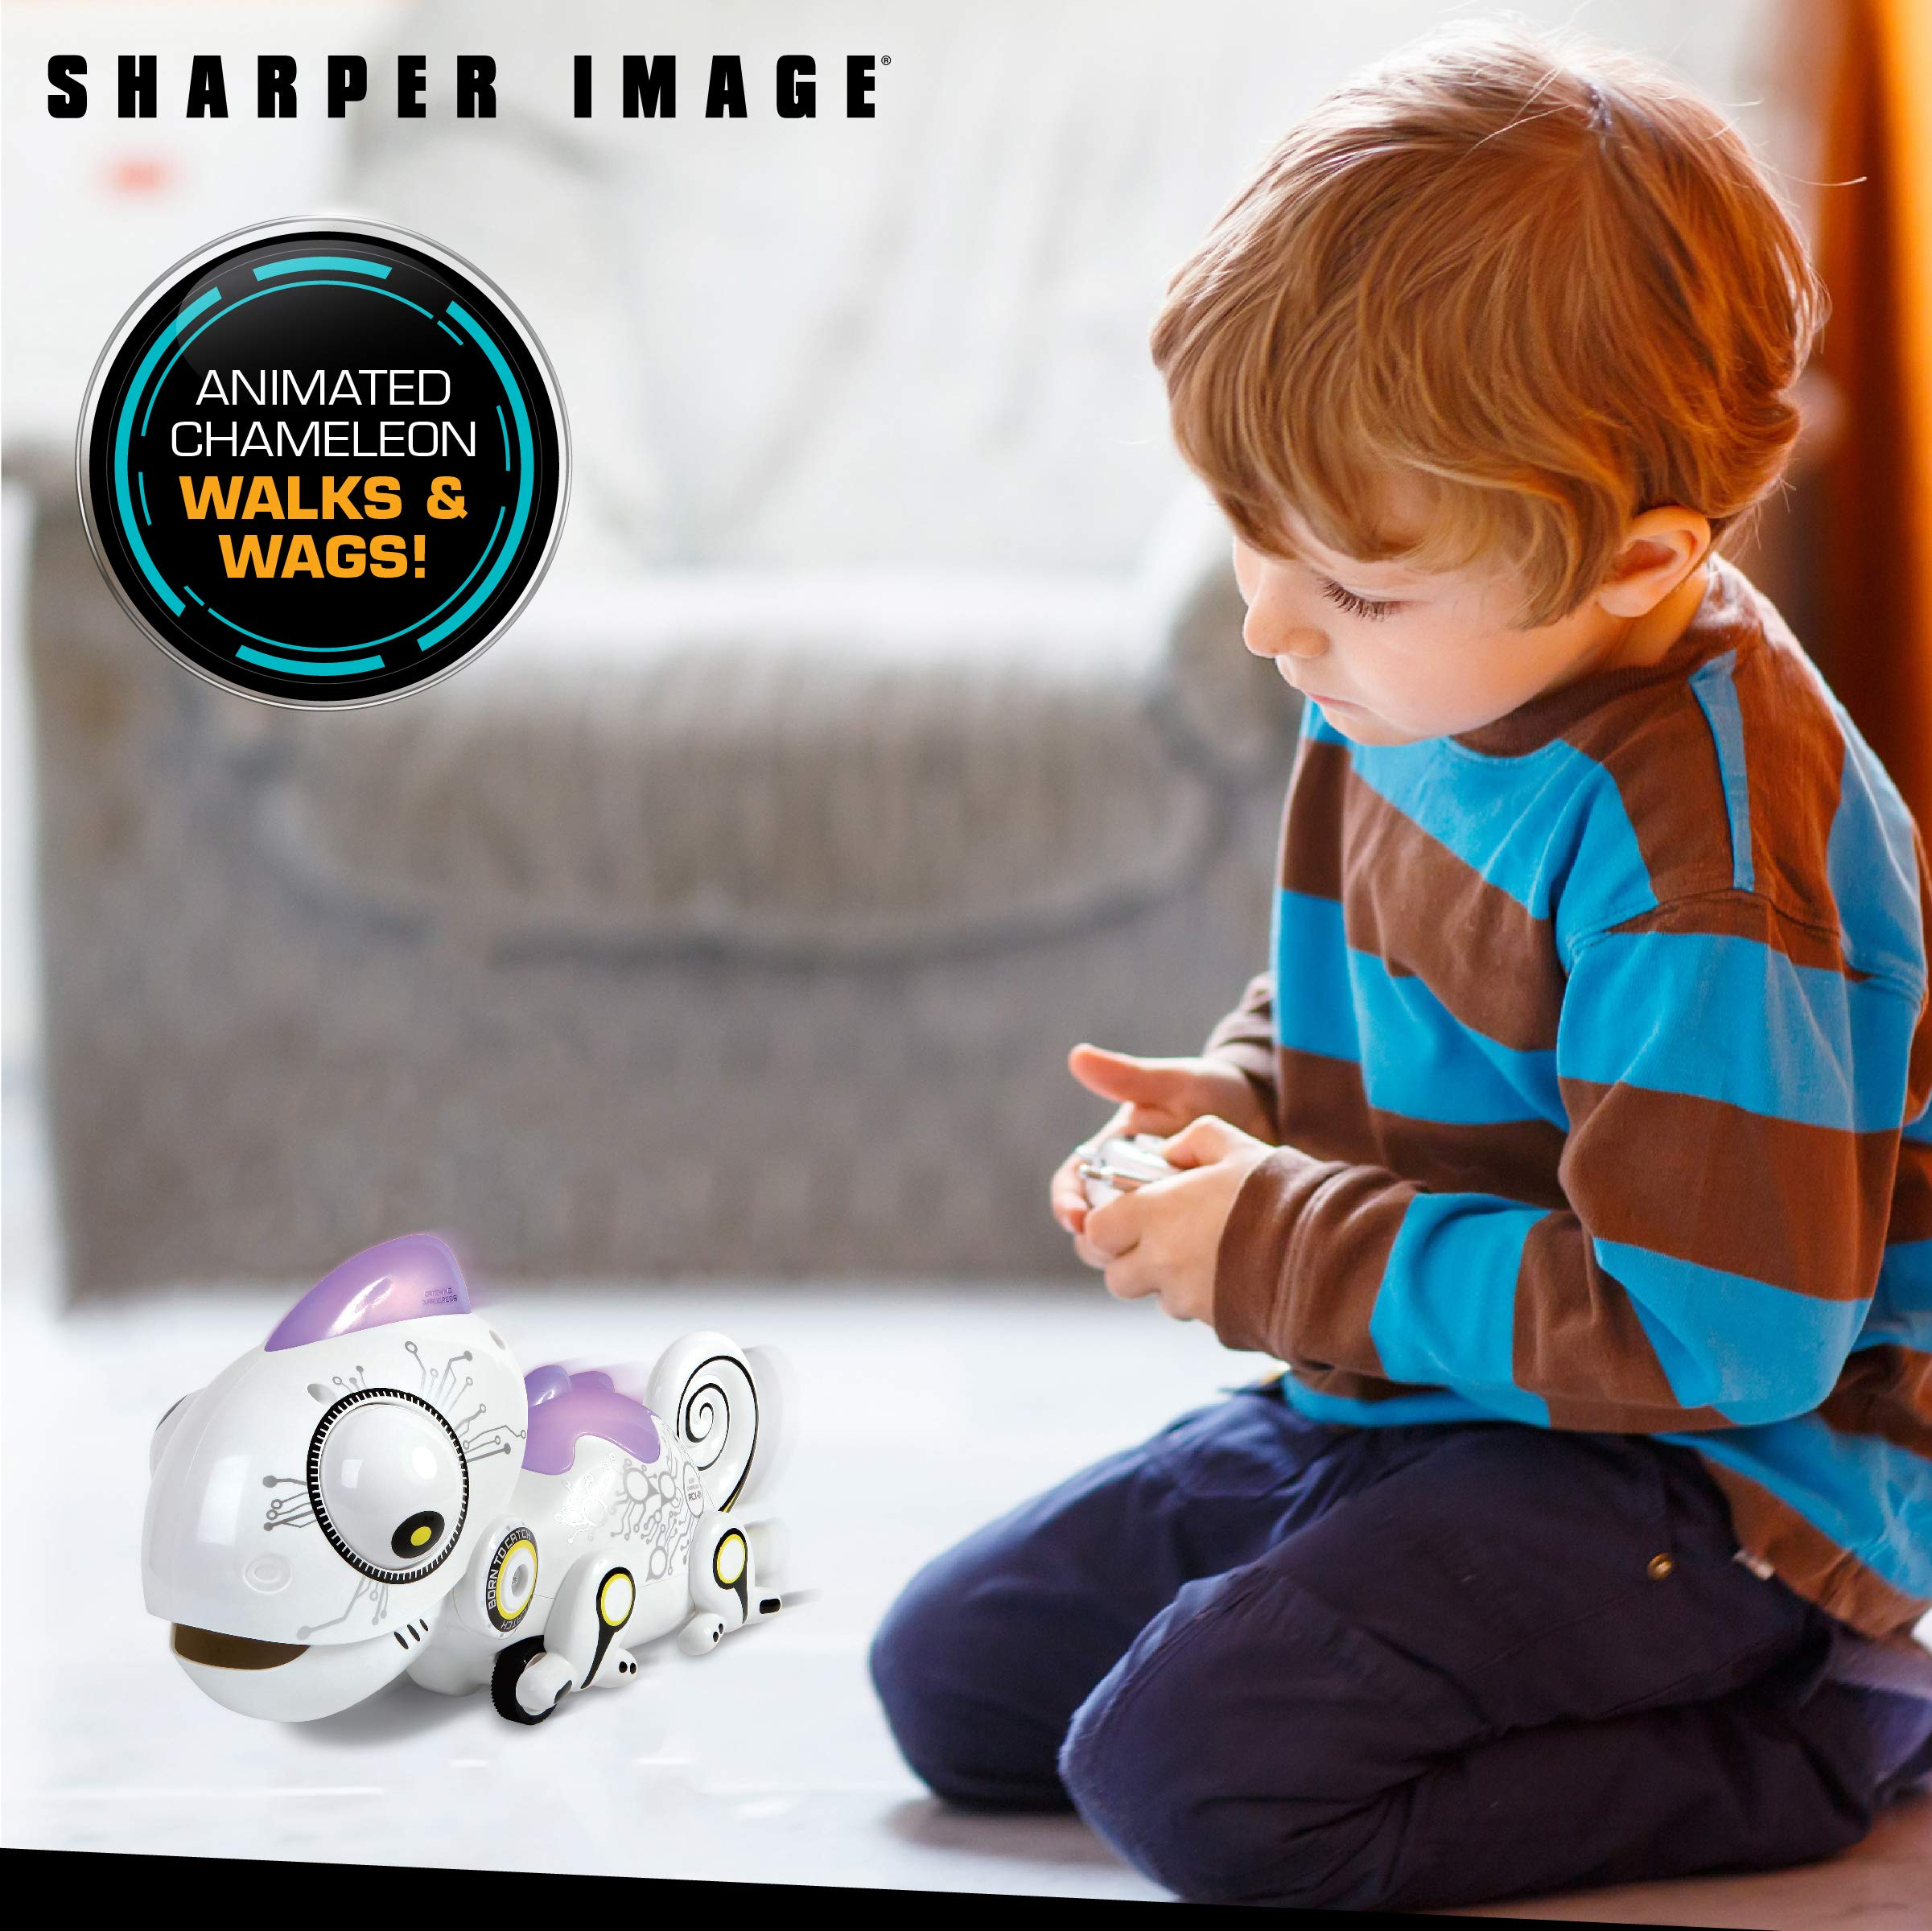 Sharper Image Color Changing RC Robotic Chameleon Toy with Multi Colored LED Lights and Bug Catching Action; Multi-Directional Remote Control & Extendable Tongue with Animated Eyes and Tail by Sharper Image (Image #4)